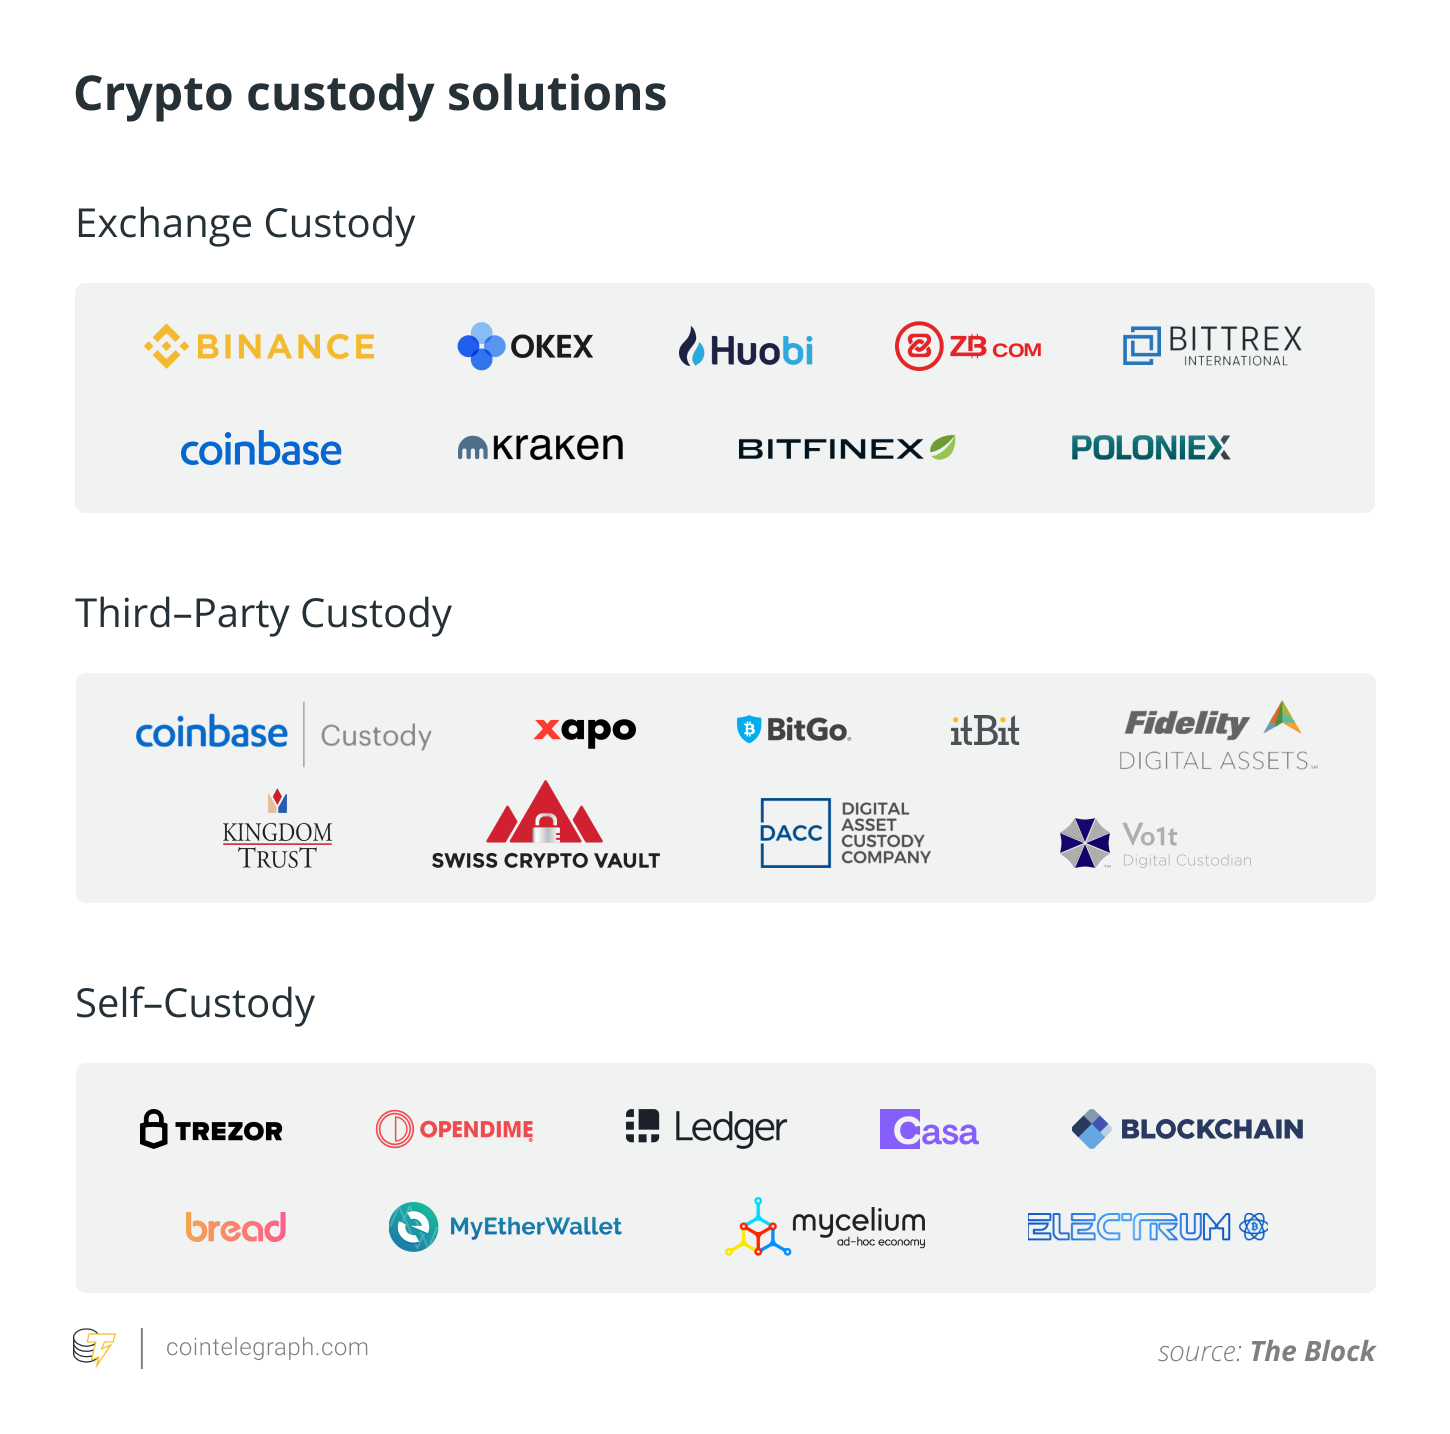 Crypto custody solutions